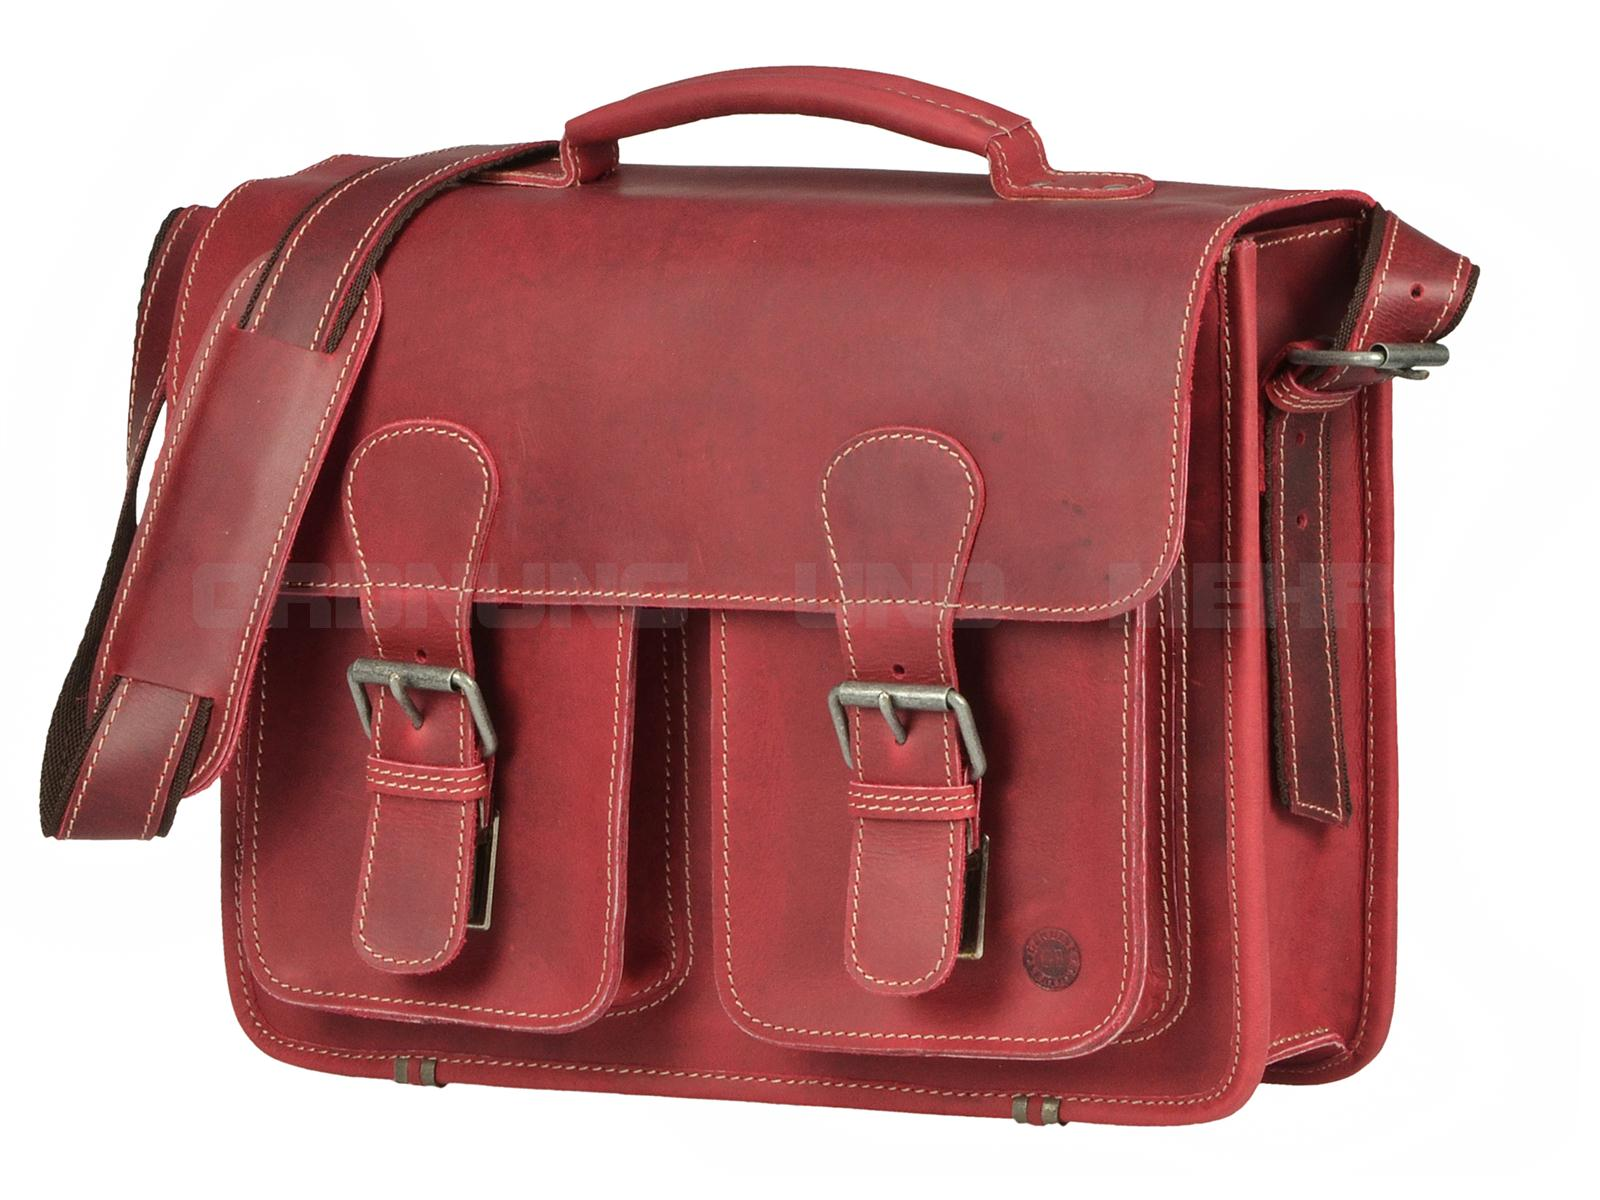 Greenburry Buffalo Ledertasche rot 1000